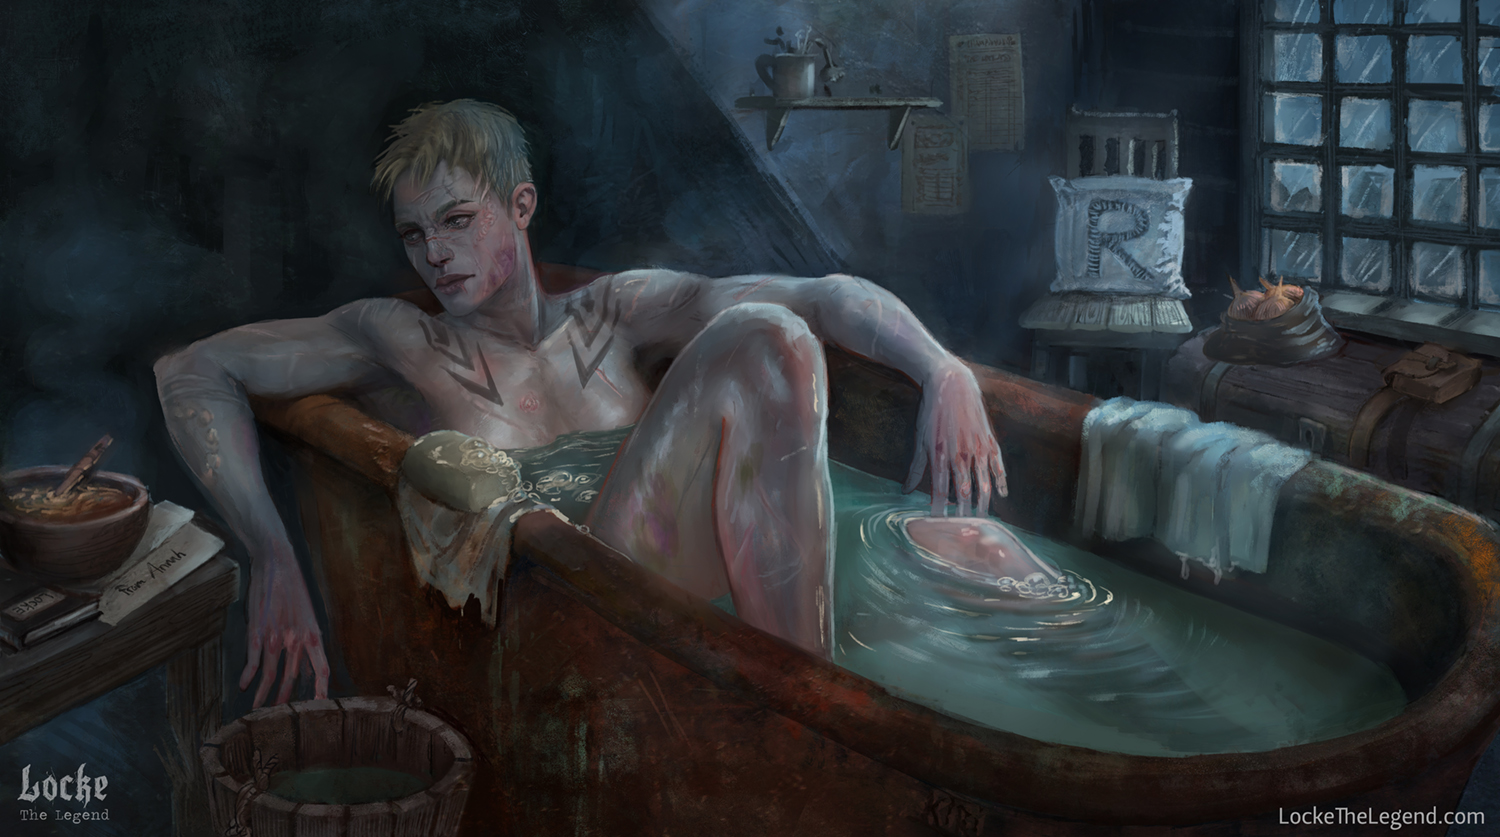 Illustration of D&D character Locke the Legend, Muscular Female Fighter Barbarian in a Bathtub